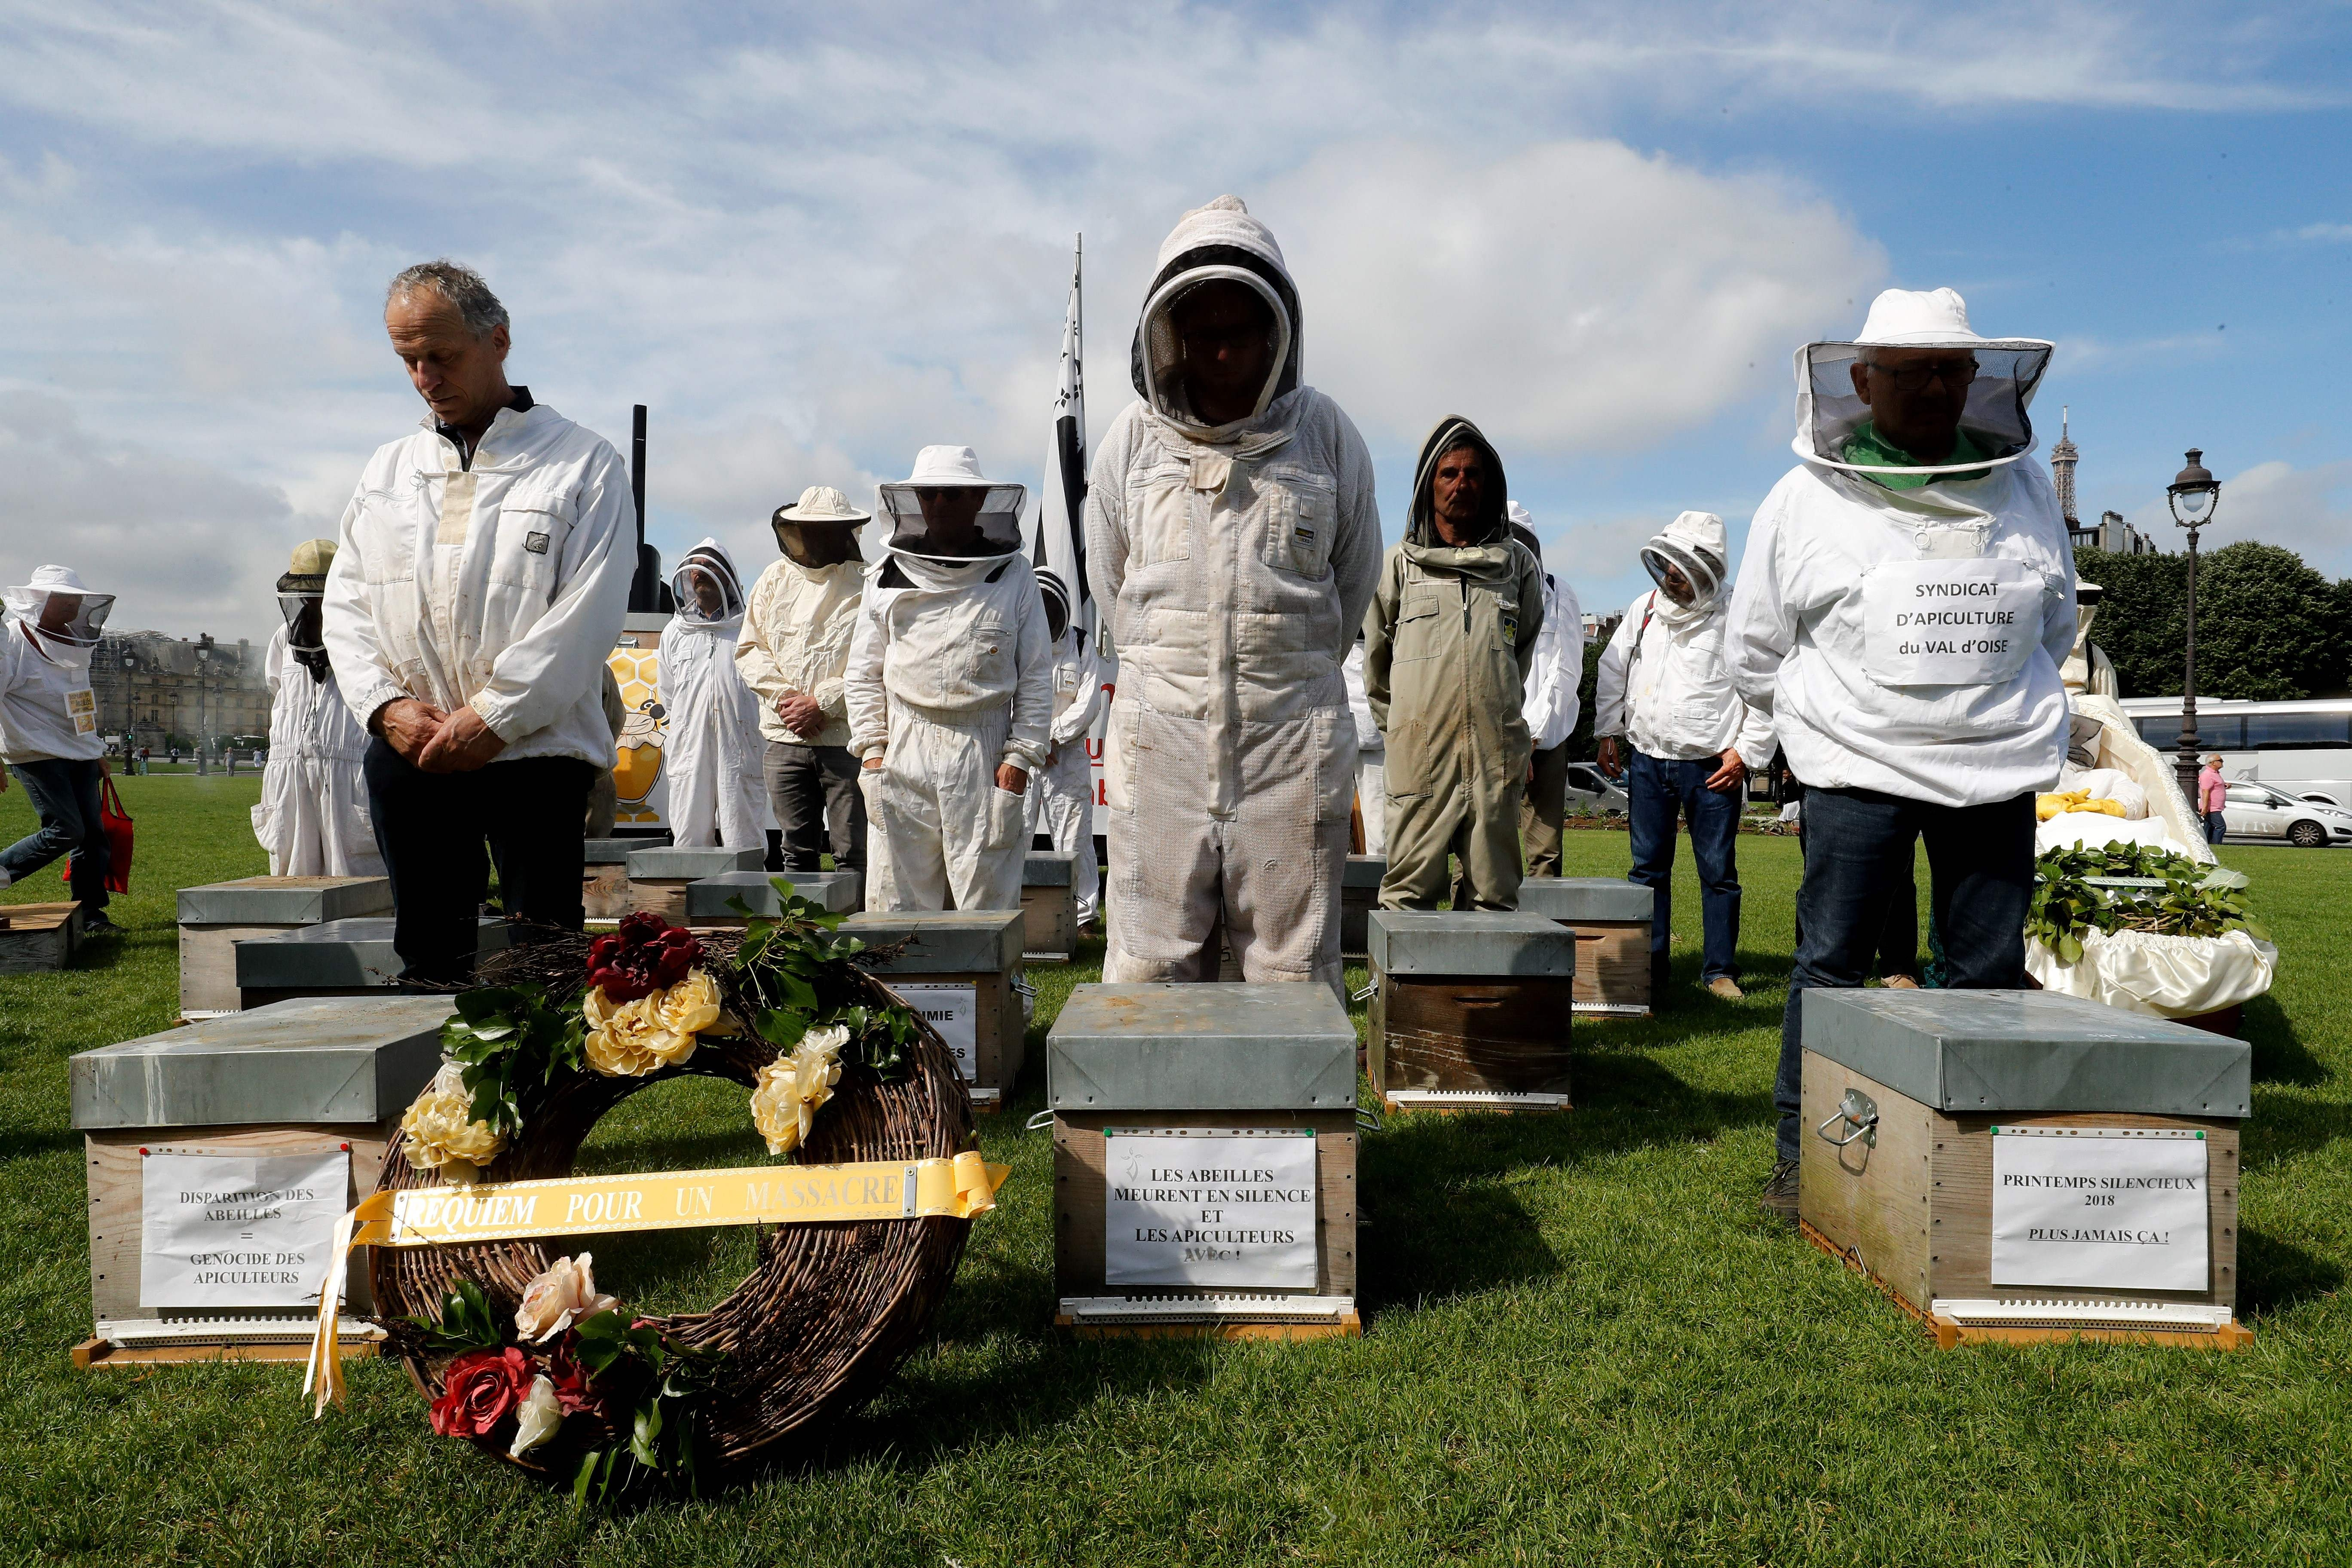 Beekeepers take part in a demonstration at the Esplanade des Invalides in Paris on June 7, 2018, during a national day of action of French beekeepers. Photo: Francois Guillot/AFP/Getty Images